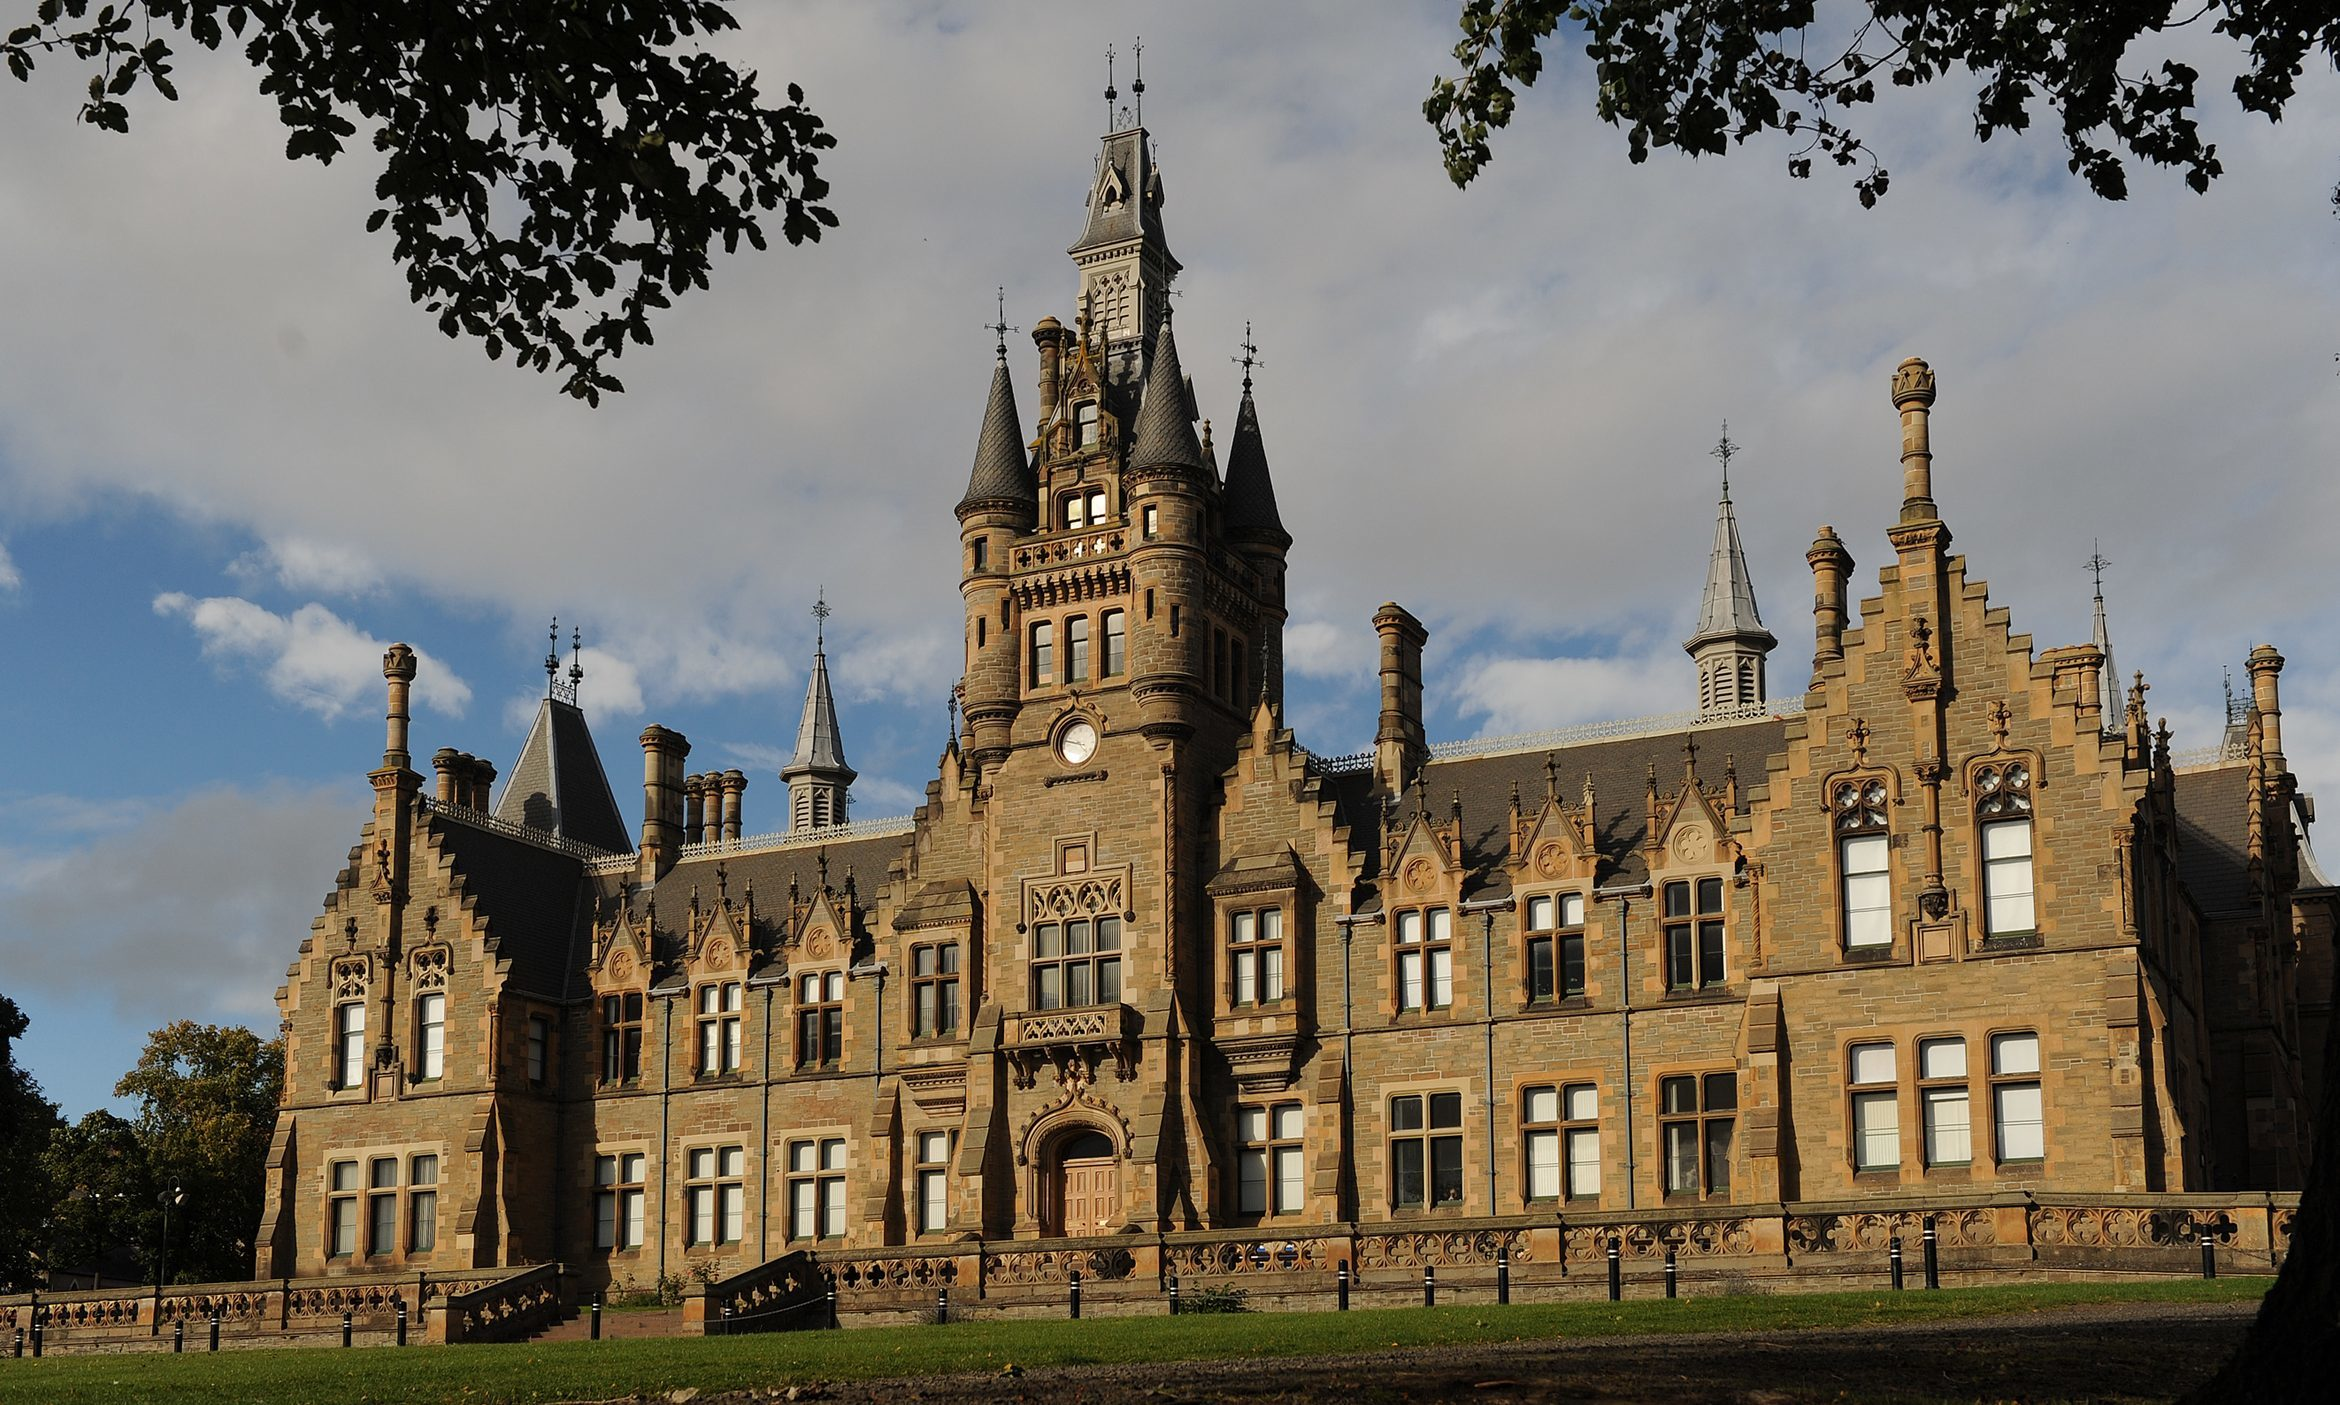 The iconic Morgan Academy building is celebrating its 150th birthday this year.